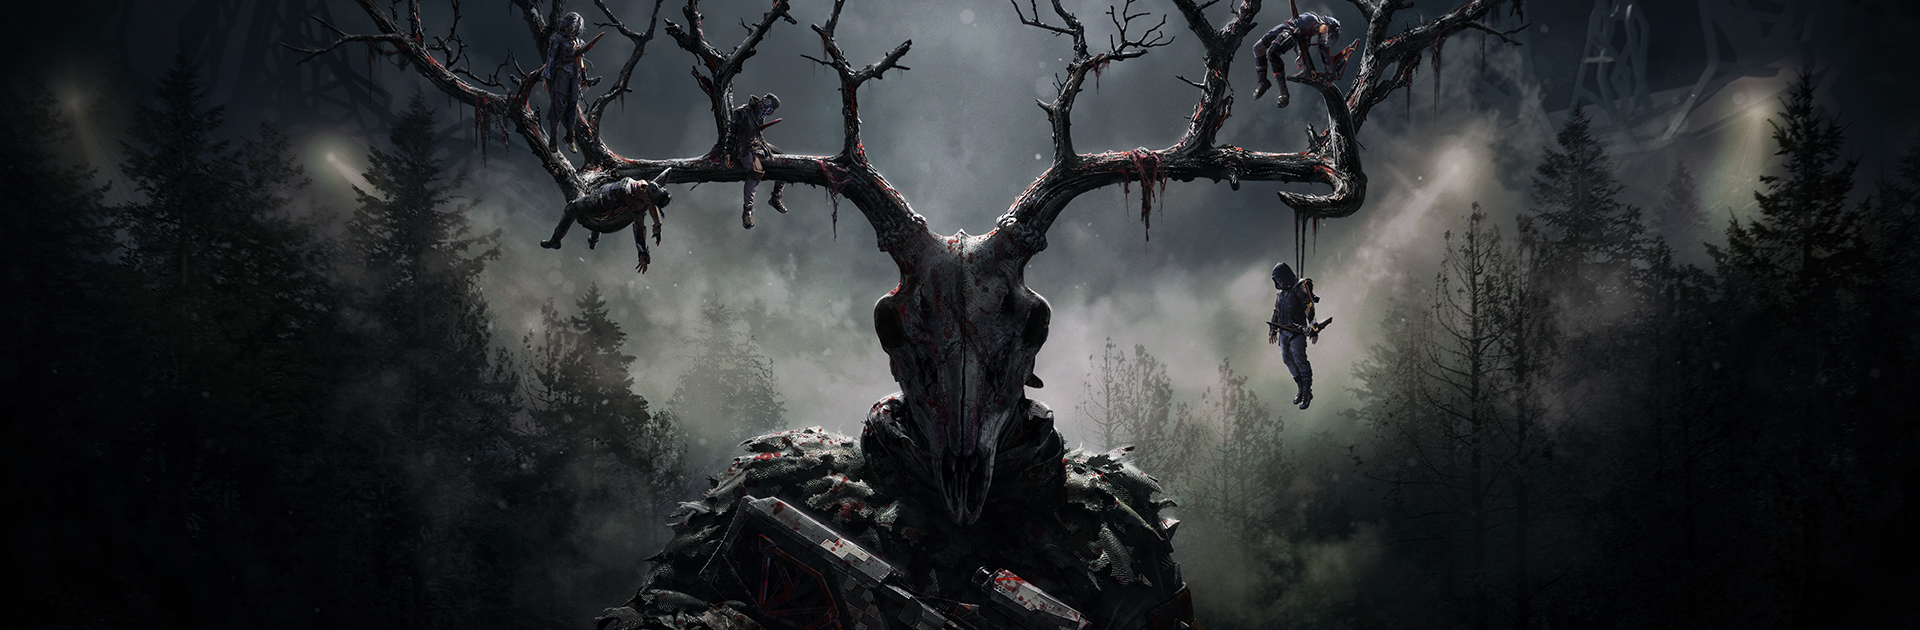 Redesigned Deathgarden: BLOODHARVEST Now Available on Steam